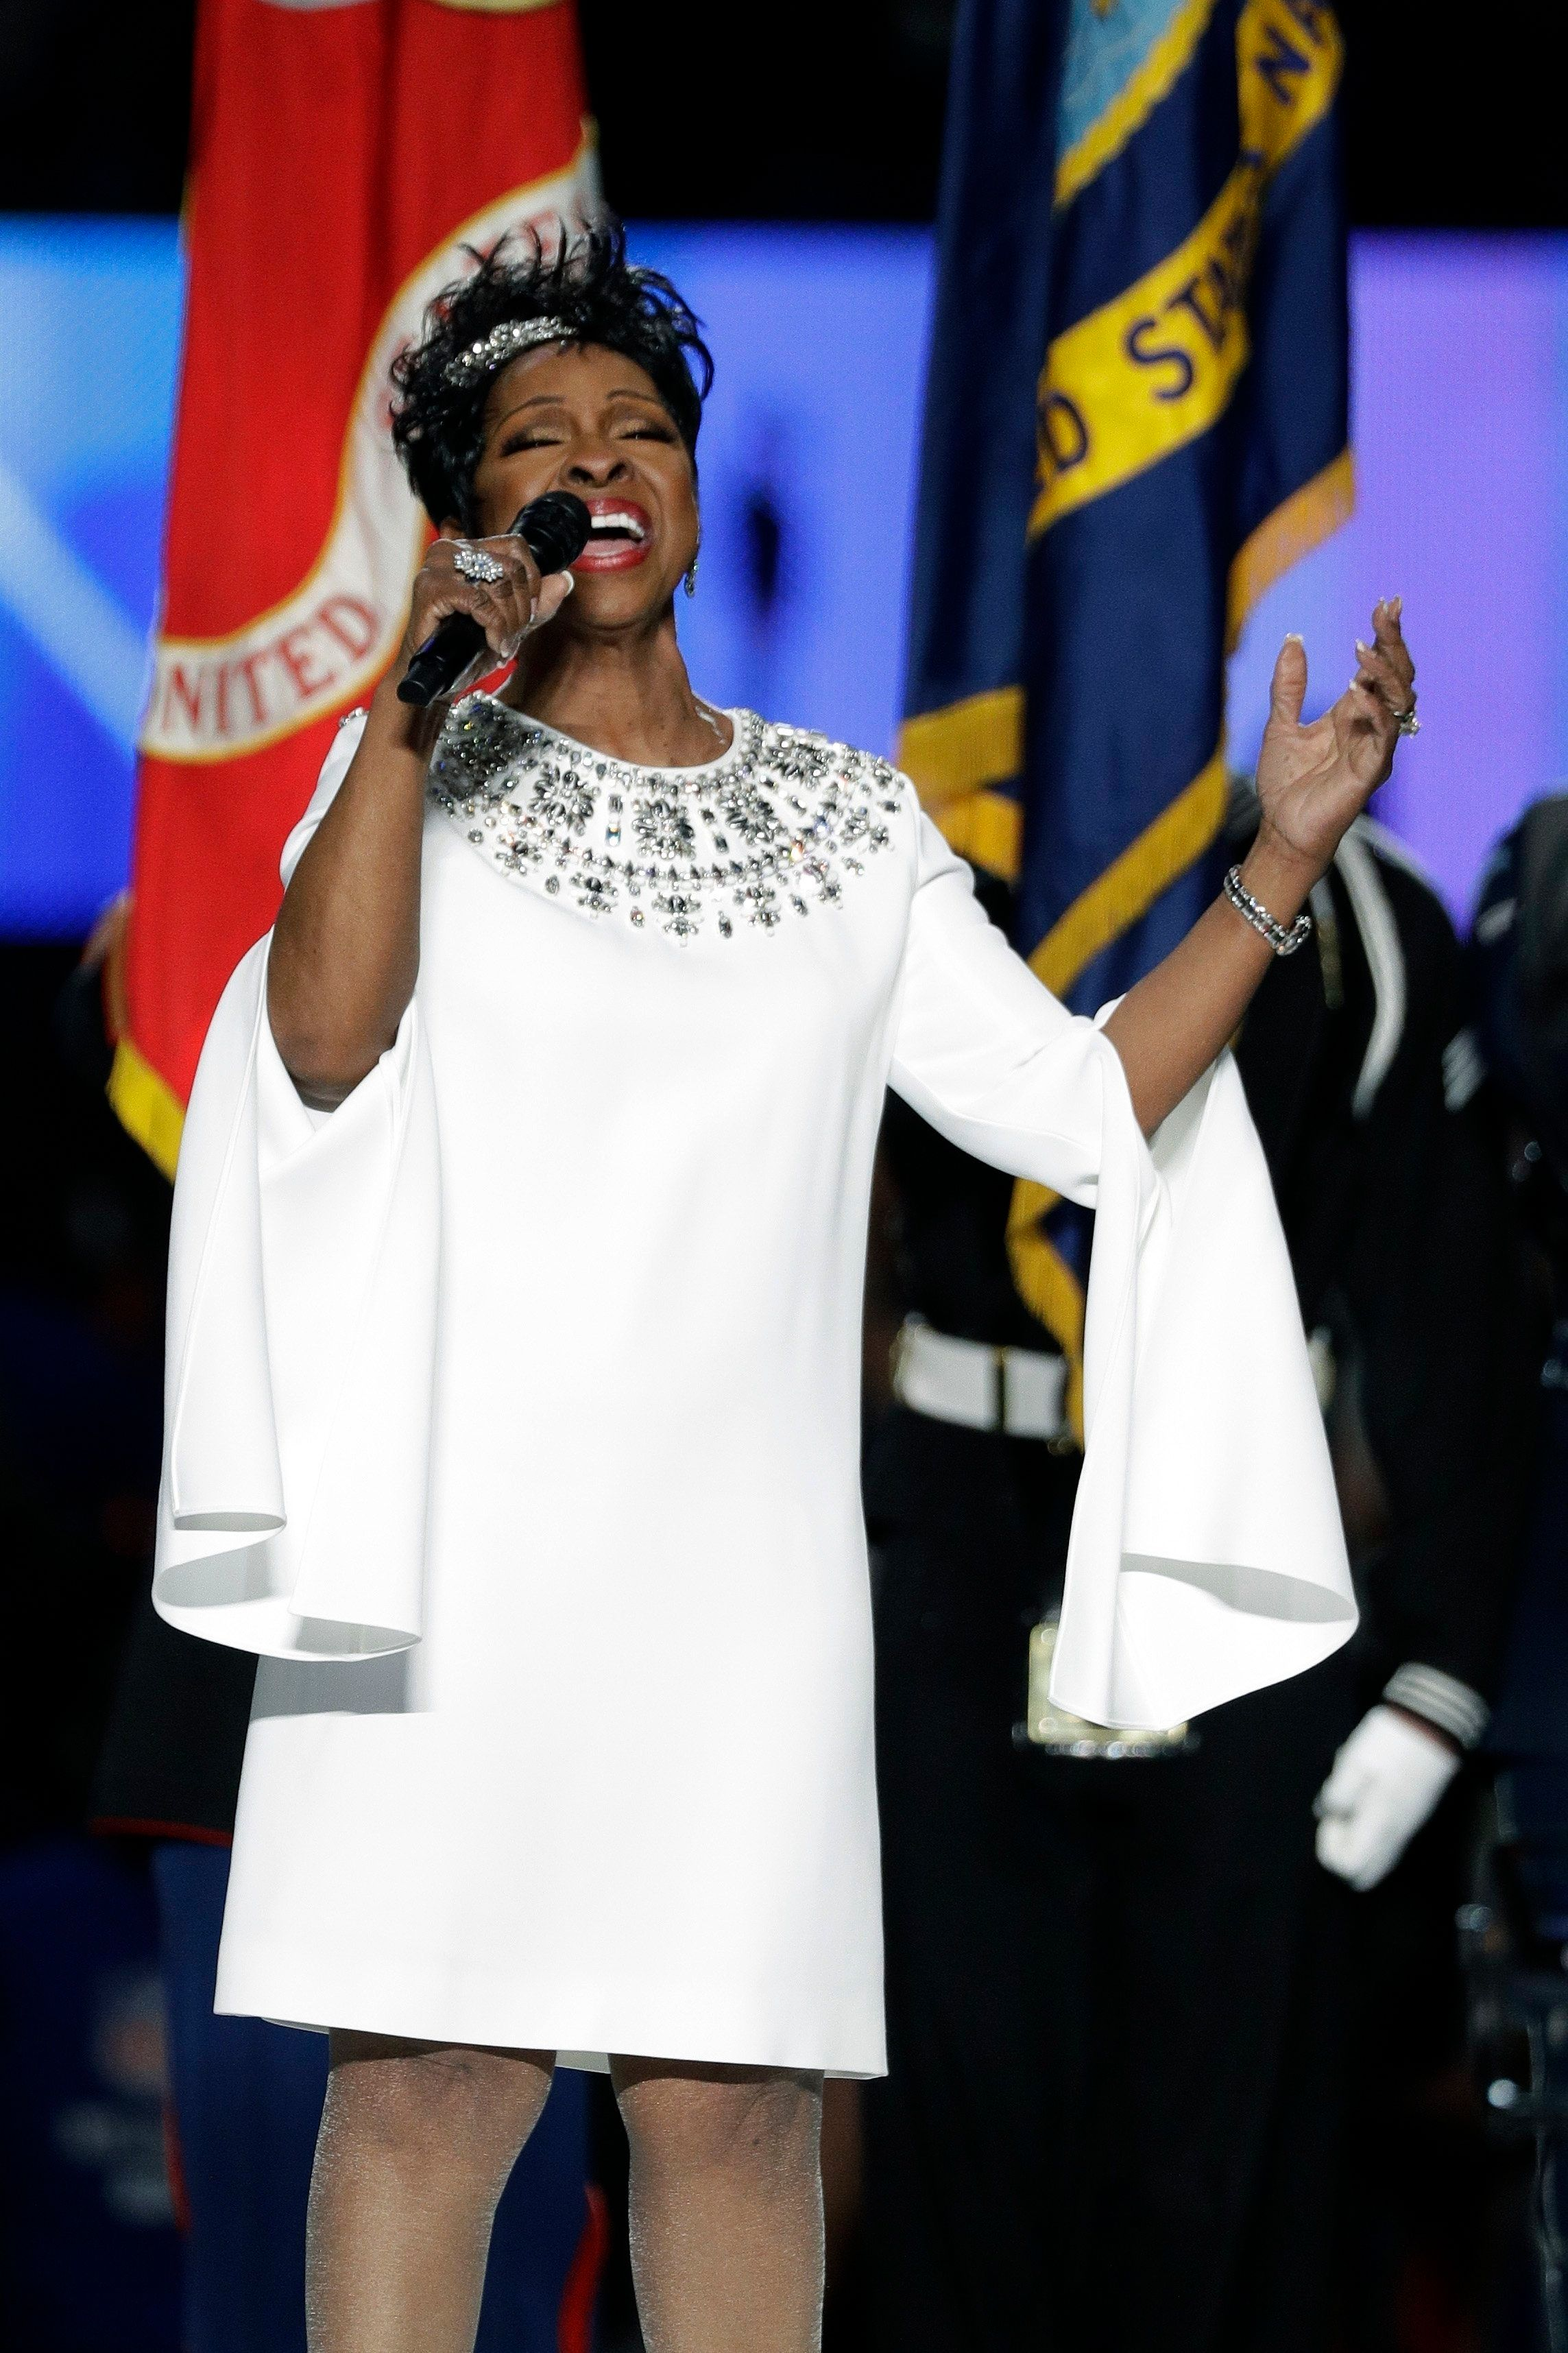 Gladys Knight singing the national anthem at Super Bowl LIII between the New England Patriots and the Los Angeles Rams in Atl